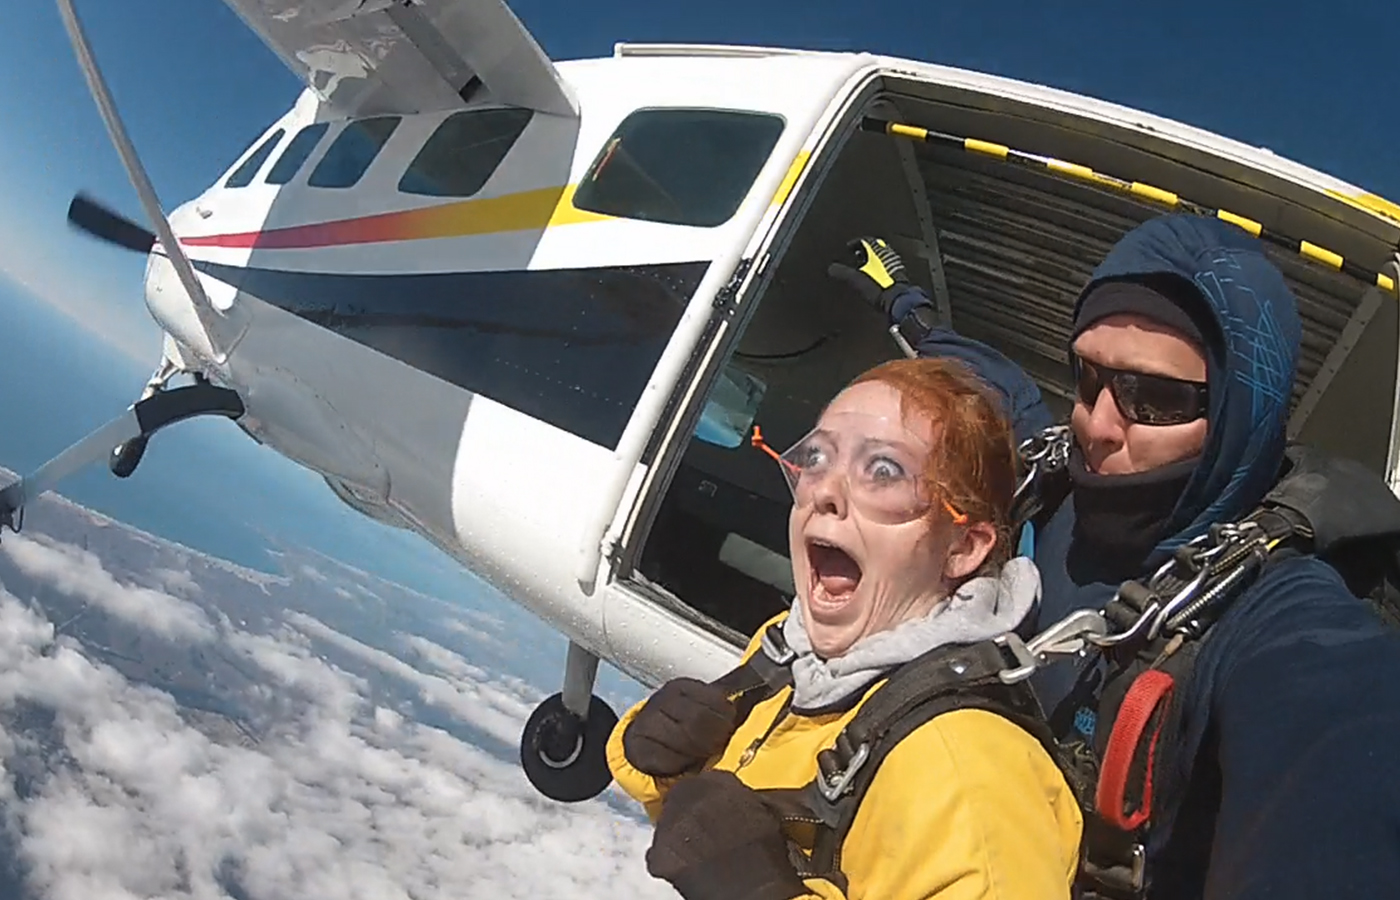 Chicago skydiving groupon : Tigerdirect corporate office